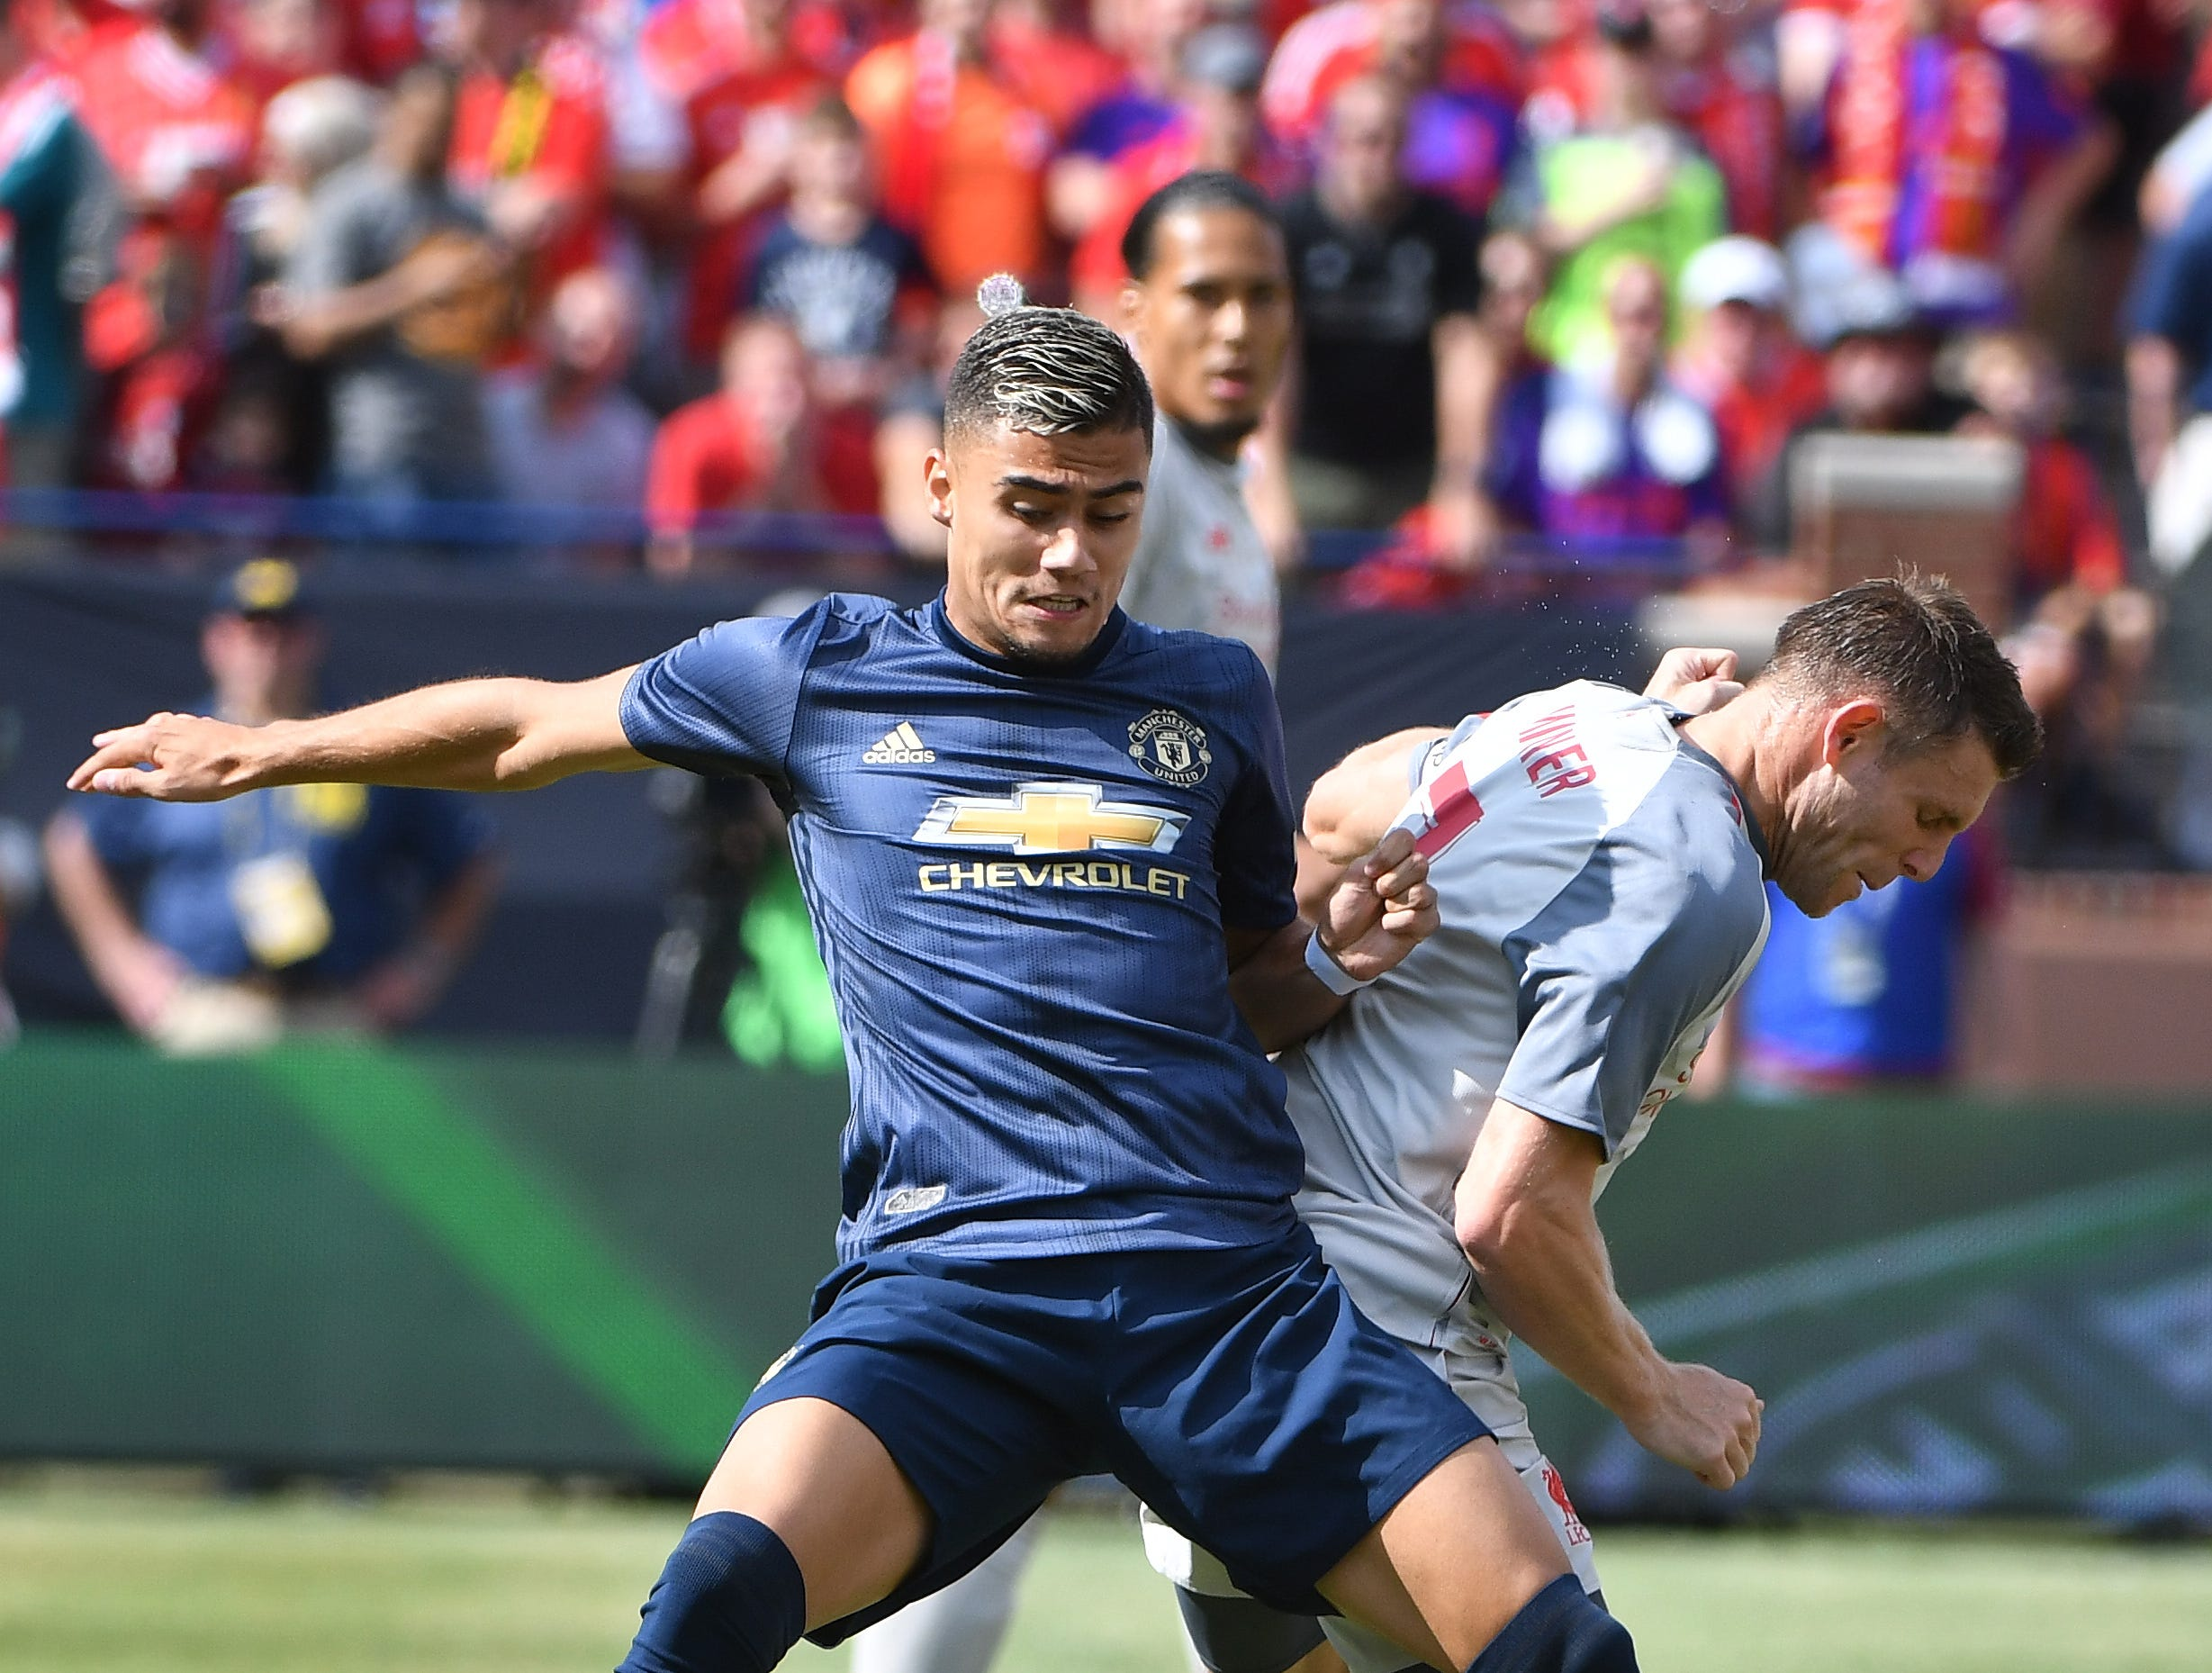 Manchester's Andreas Pereira and Liverpool's James Milner battle for the ball in the first half.